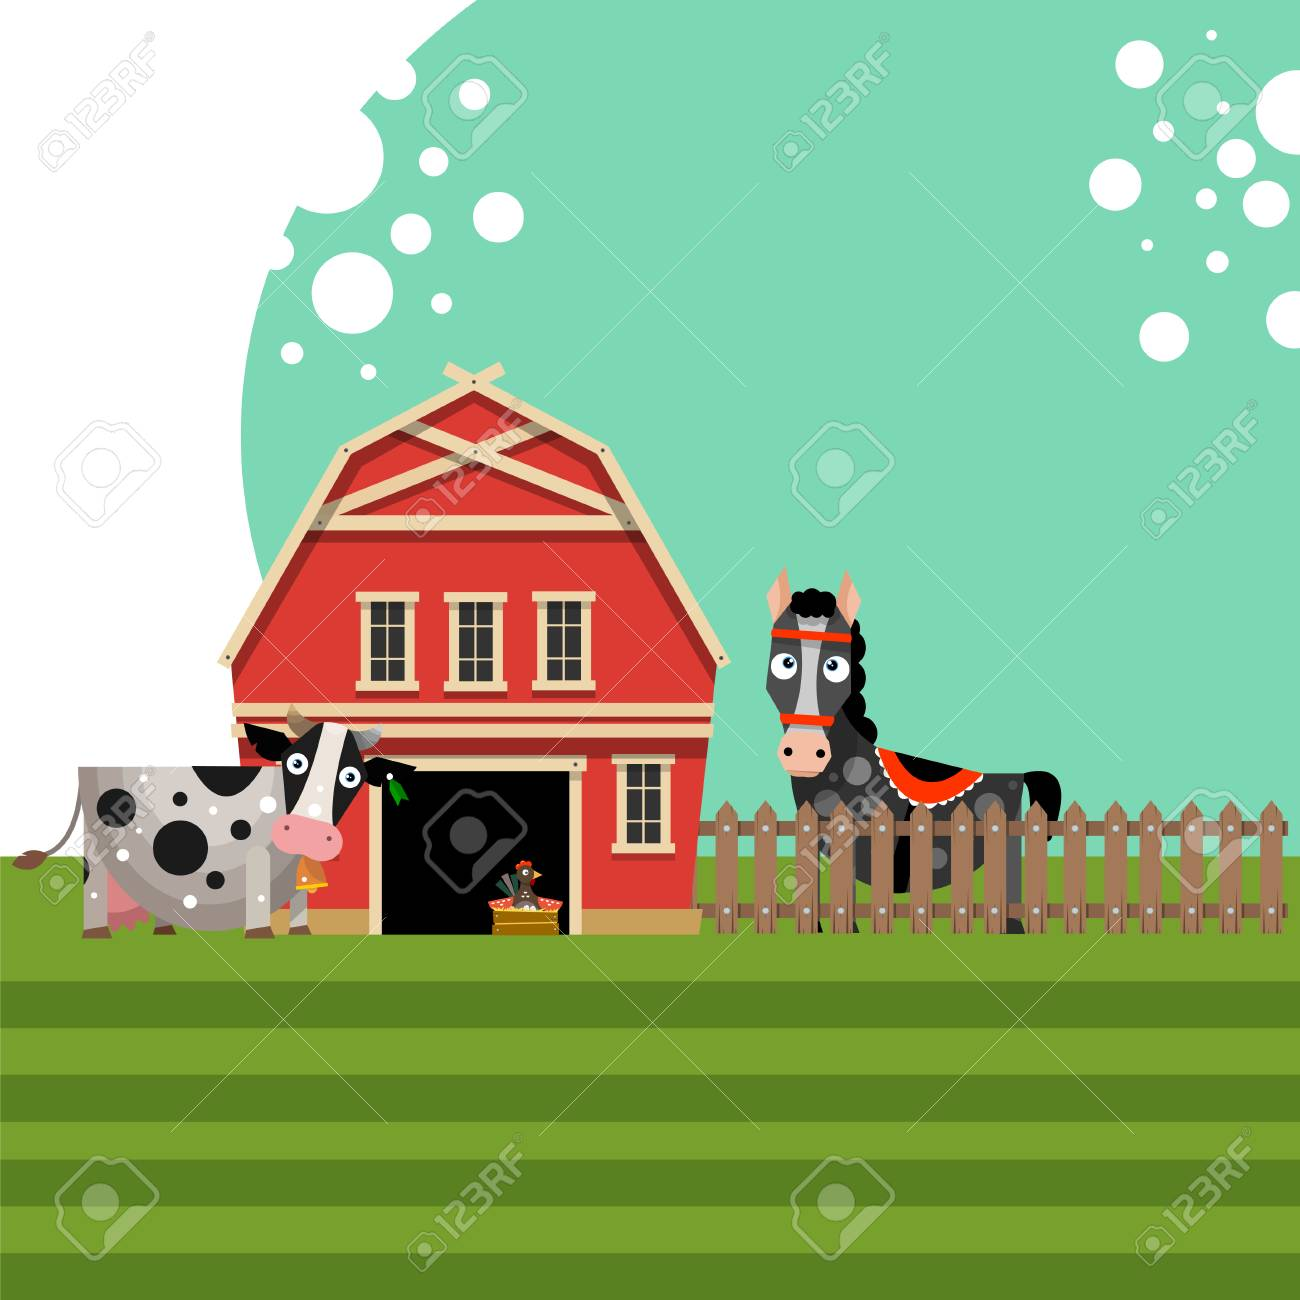 Farm Red Barn With Fence And Animals The Concept Of Rural Life